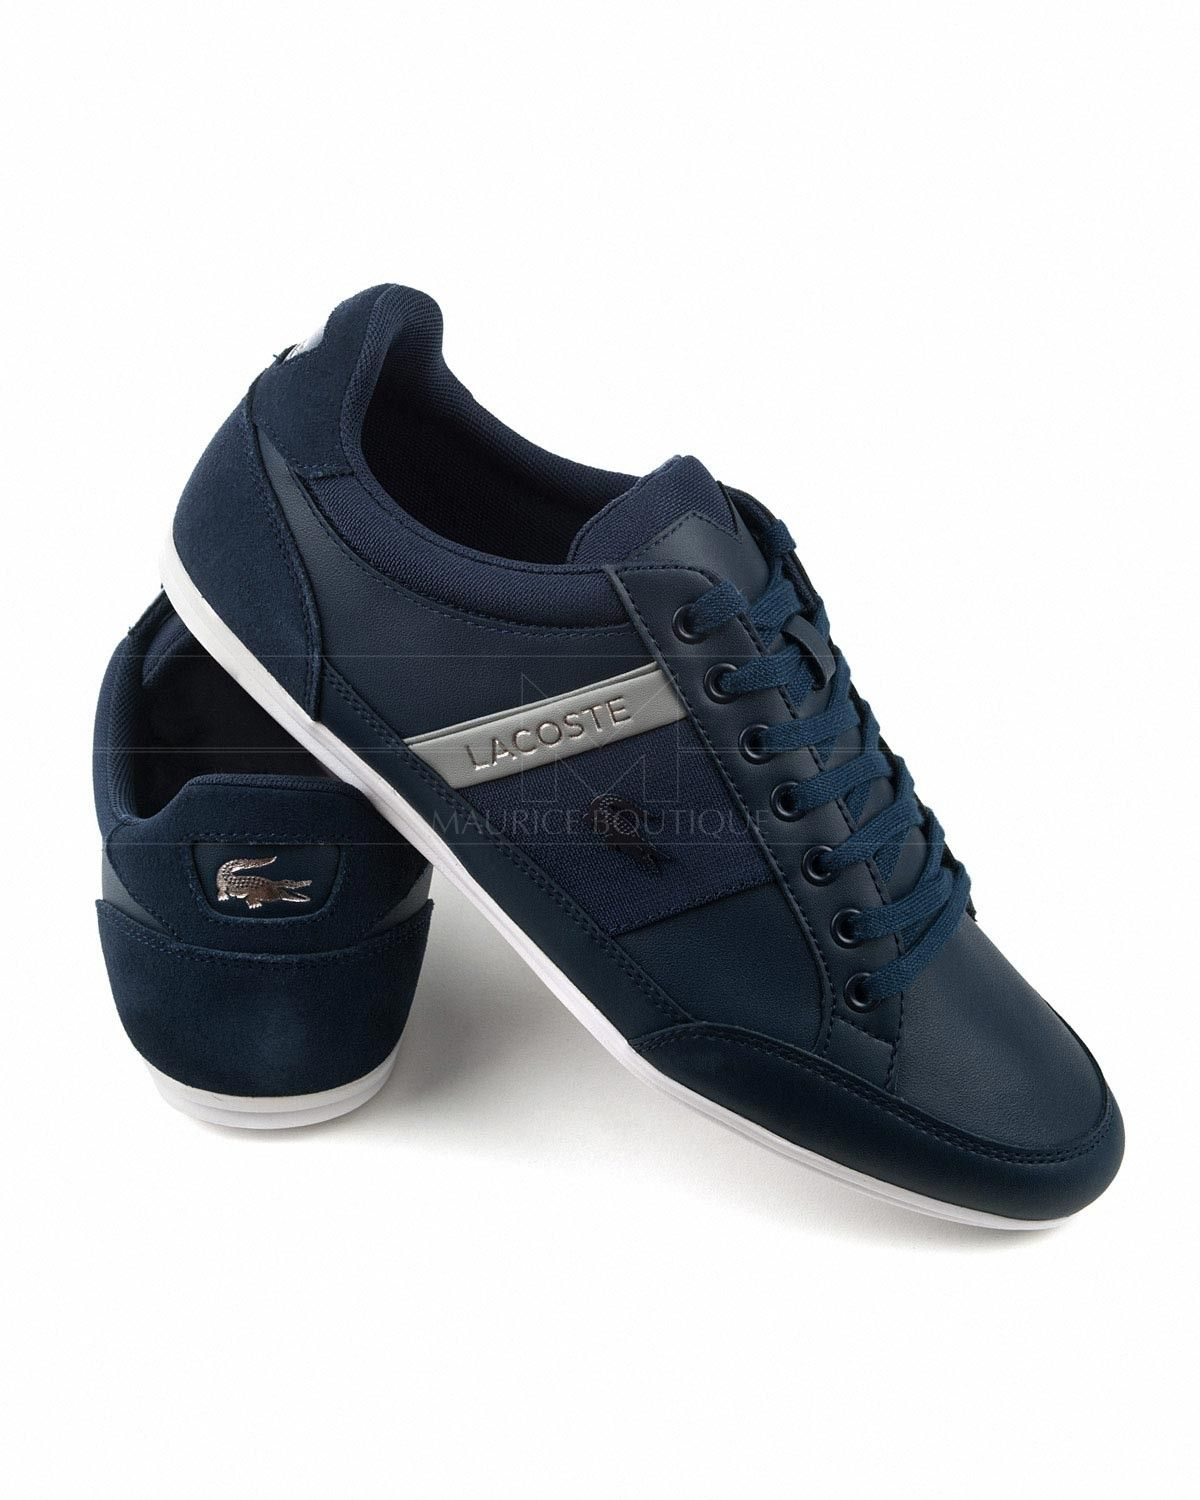 9953c3e0be Lacoste Trainers Chaymon - Navy Blue in 2019 | Man style | Lacoste ...